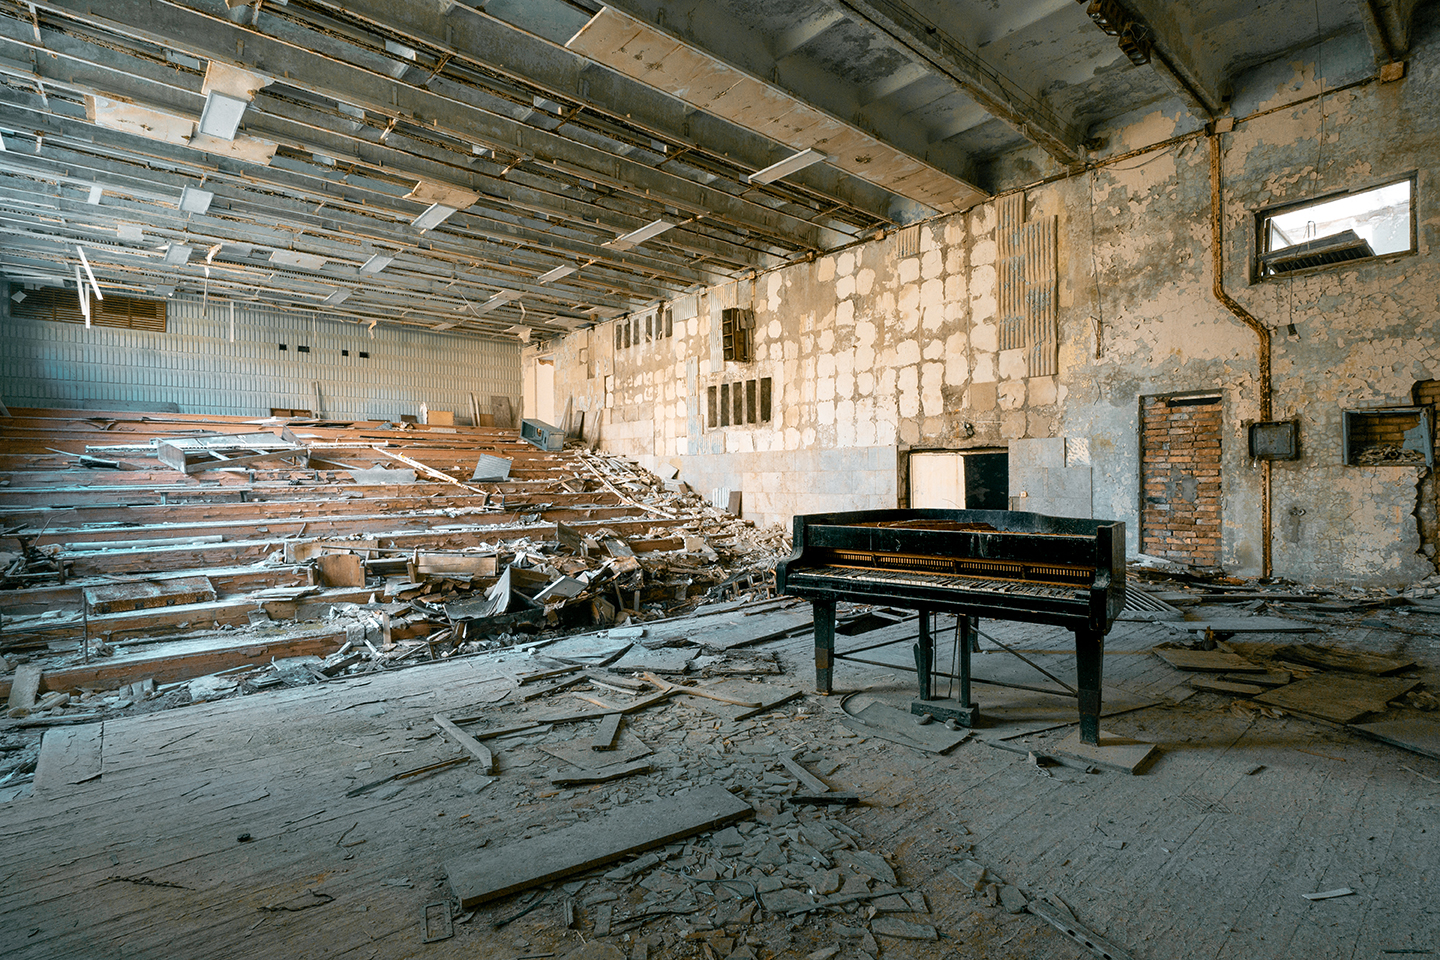 abandoned piano in Chernobyl, Romain Thiery photographer, requiem pour pianos series